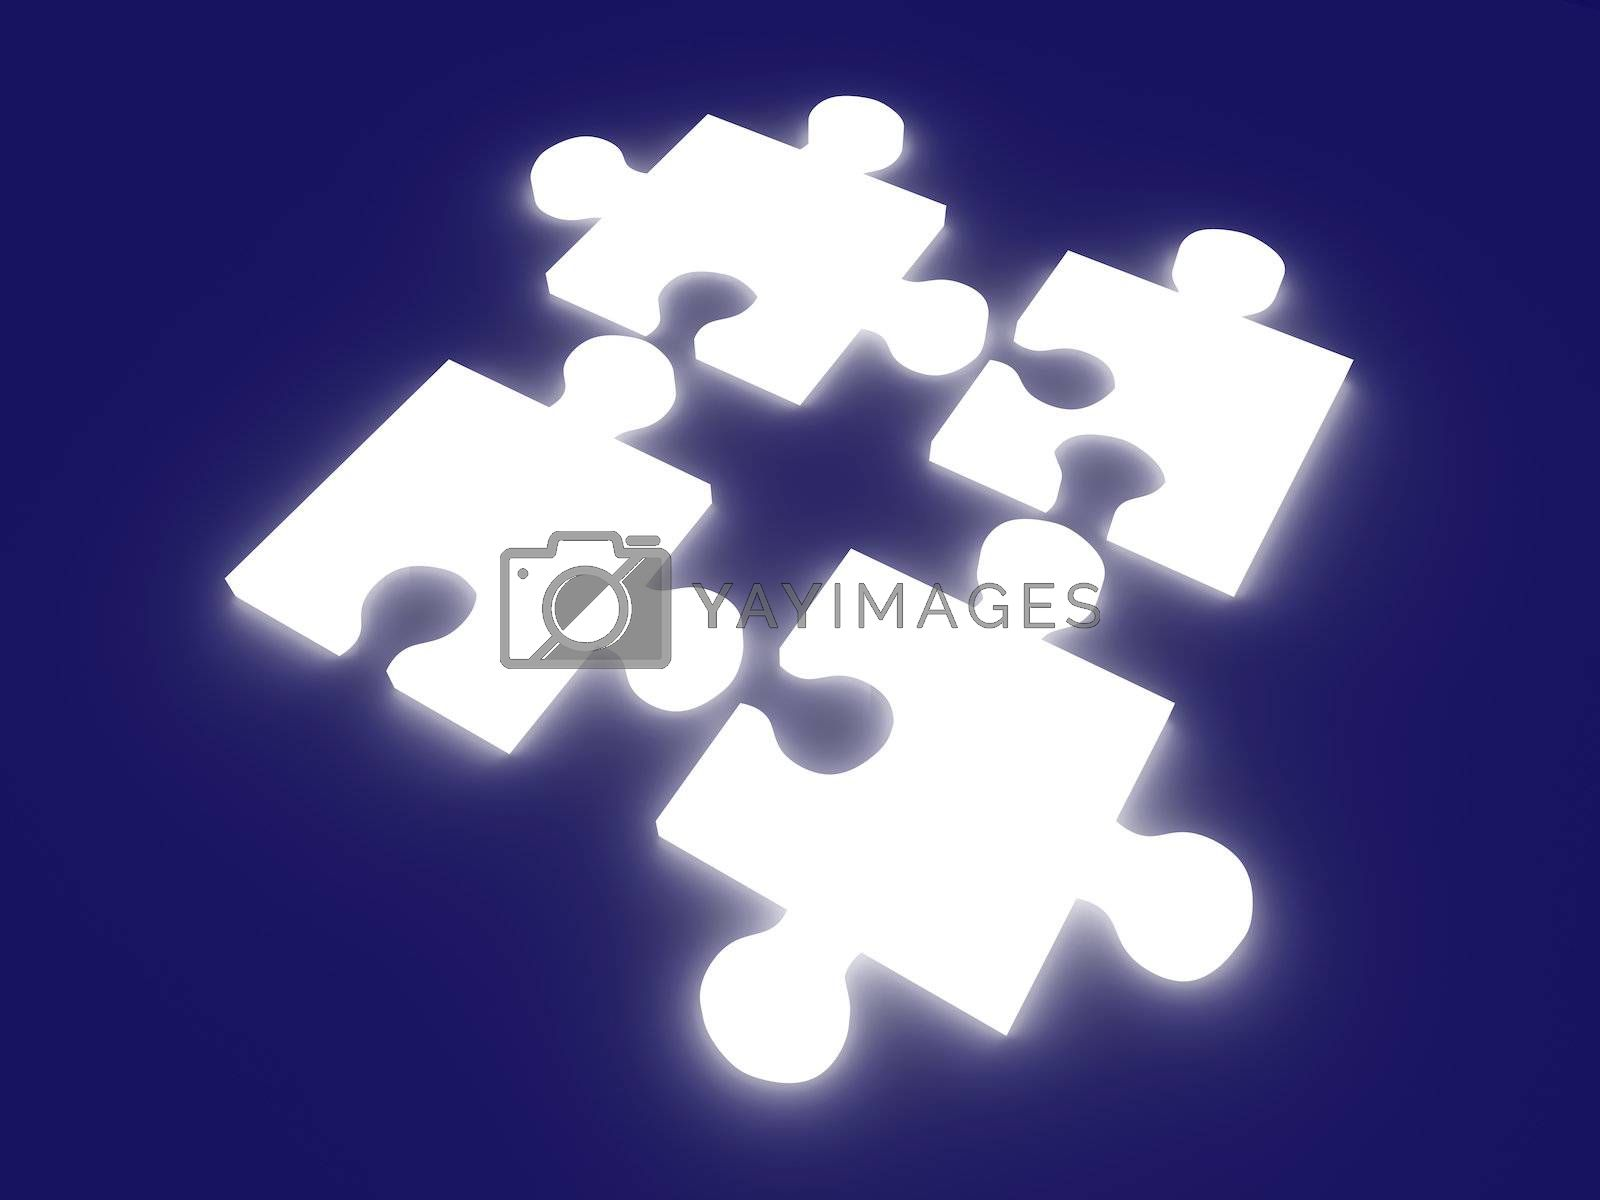 3D rendered Illustration. Glowing puzzle pieces.